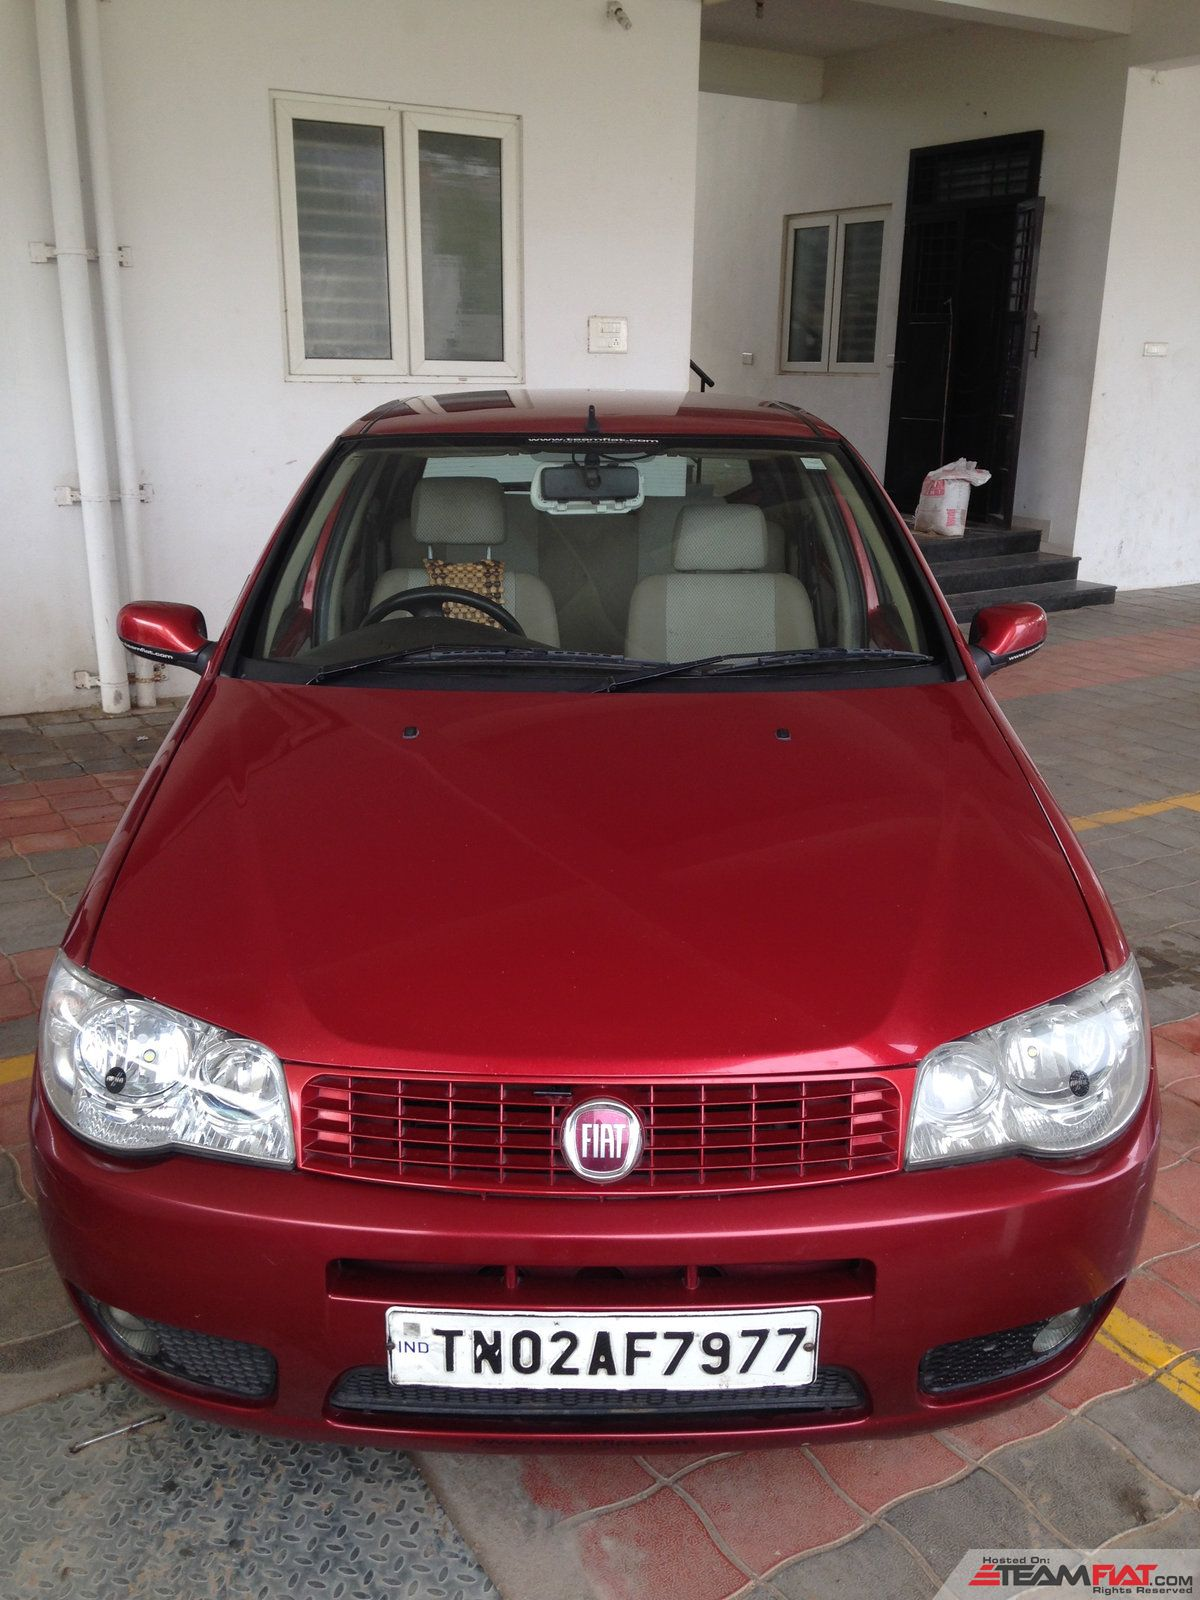 Fiat Palio Multijet (10 of 12).jpg